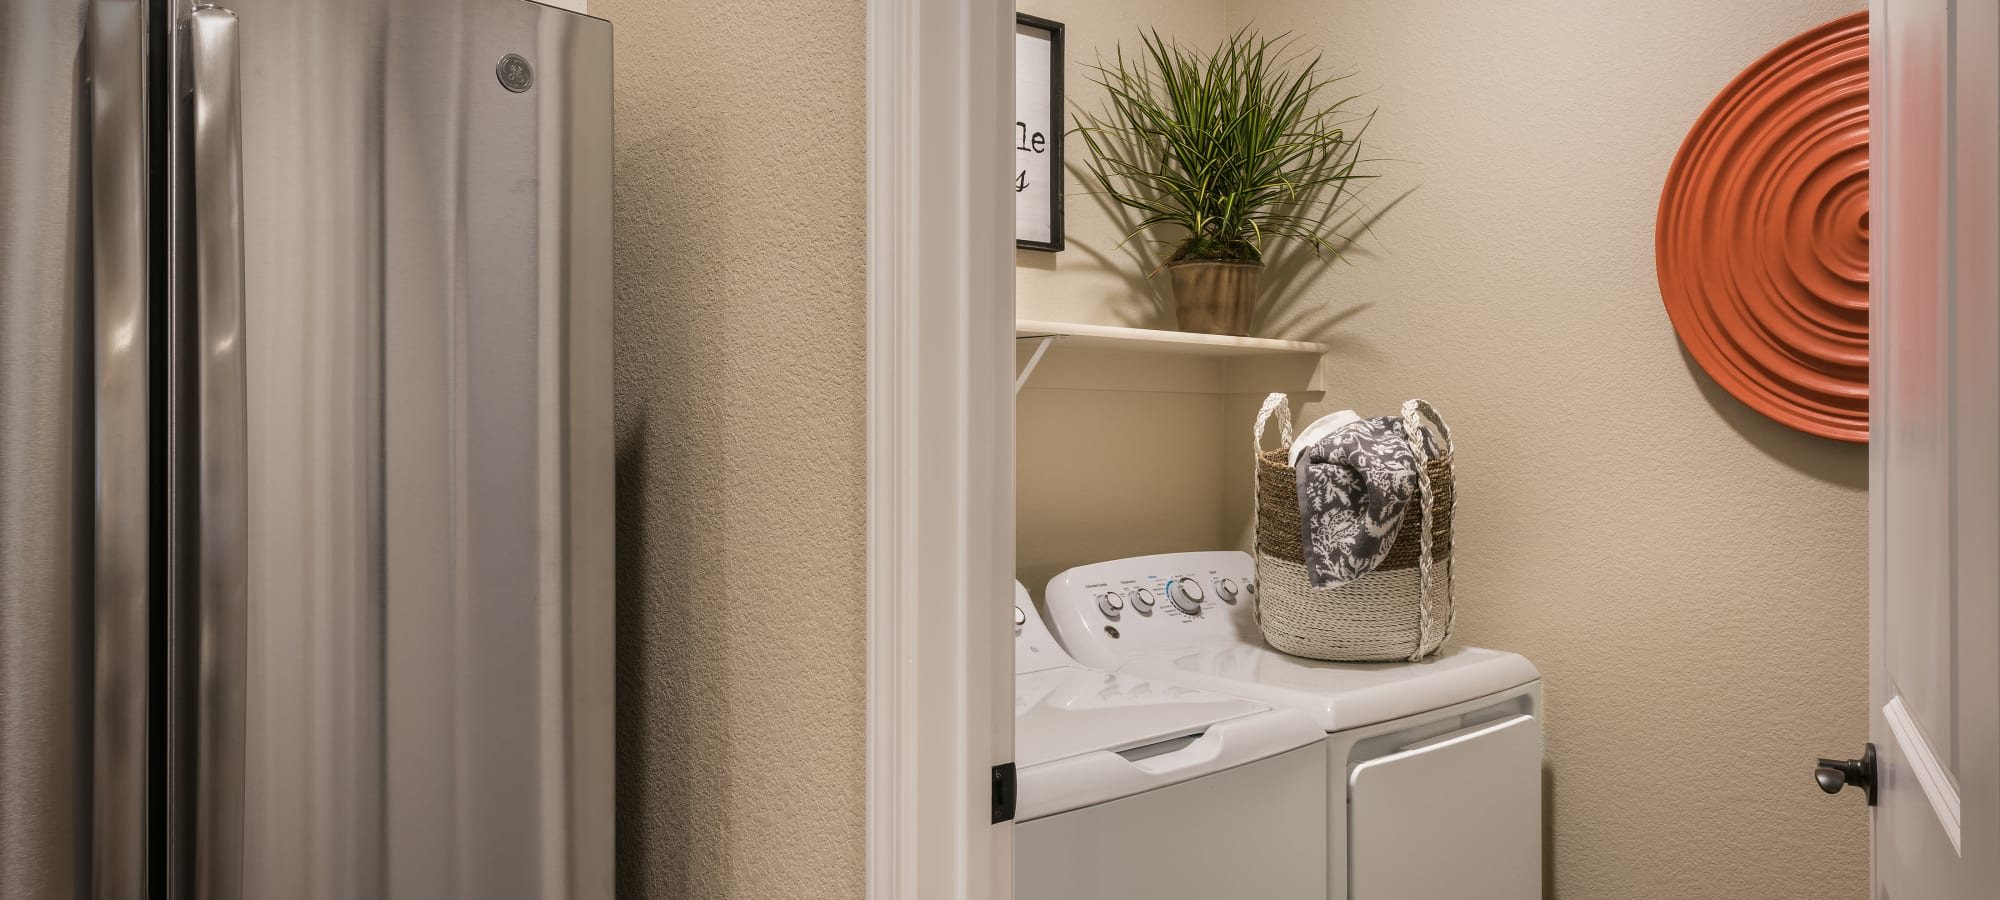 Washer and dryer area in stylish apartment  at San Villante in Mesa, Arizona